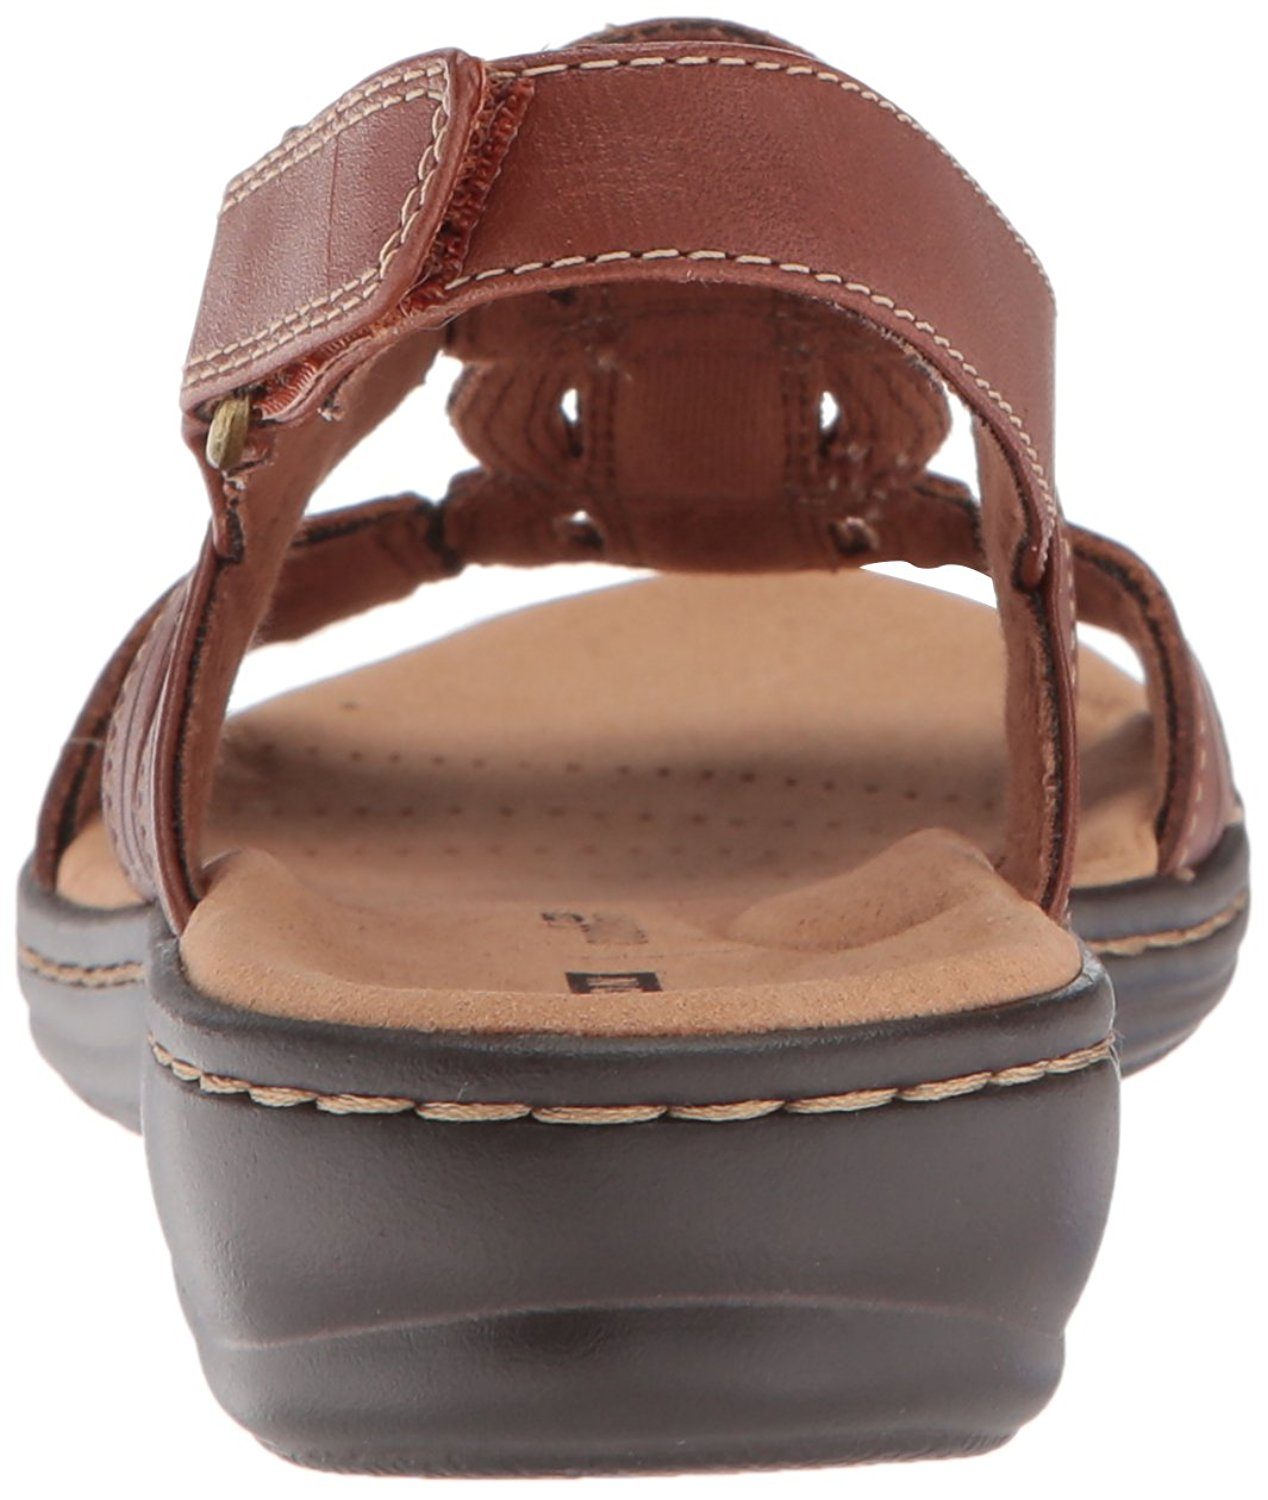 7e455e91173 CLARKS Womens leisa vine Leather Open Toe Casual Ankle Strap Sandals ...